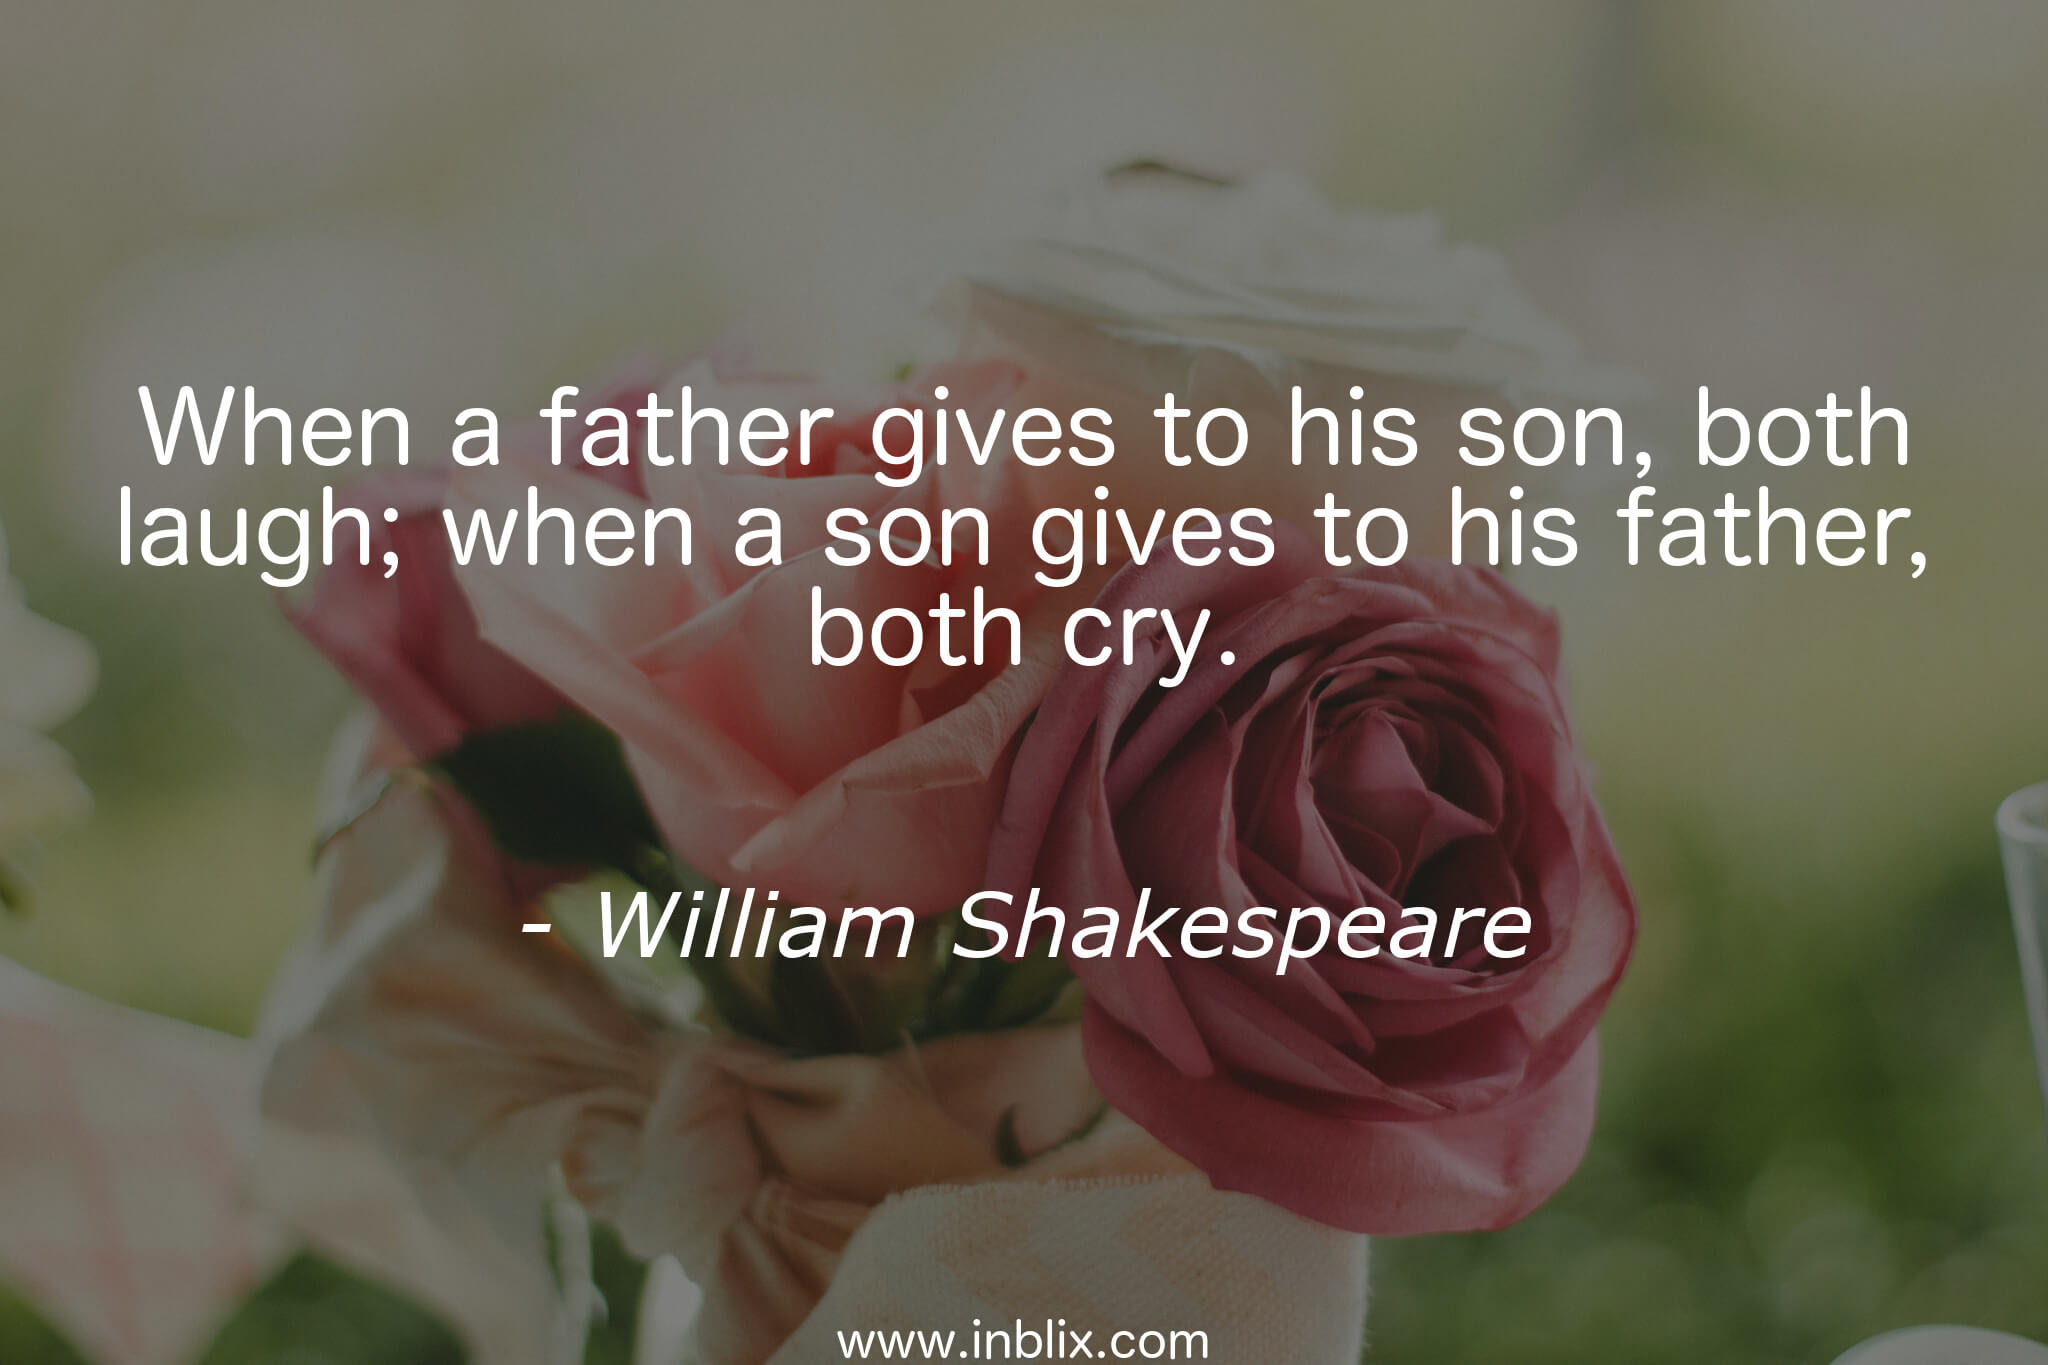 When a father gives to his son, both laugh; when a son gives to his father, both cry.